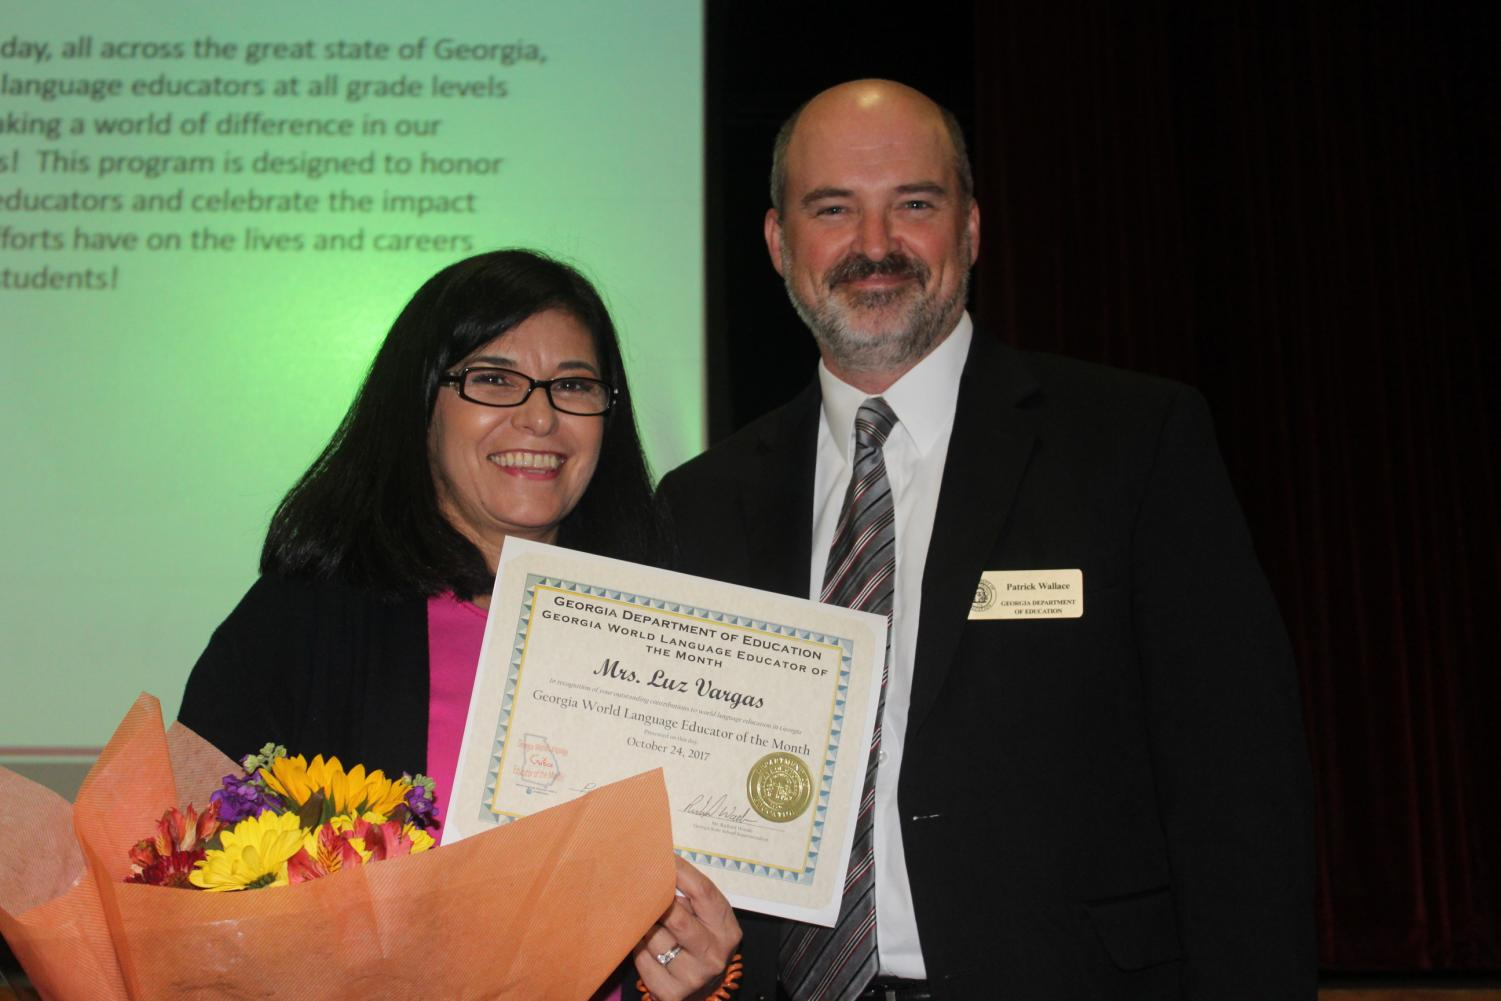 Vargas poses with presenter Patrick Wallace and the World Educator of the month award. This award is presented each month to an educator in the state of Georgia who shows exemplary dedication in the classroom.